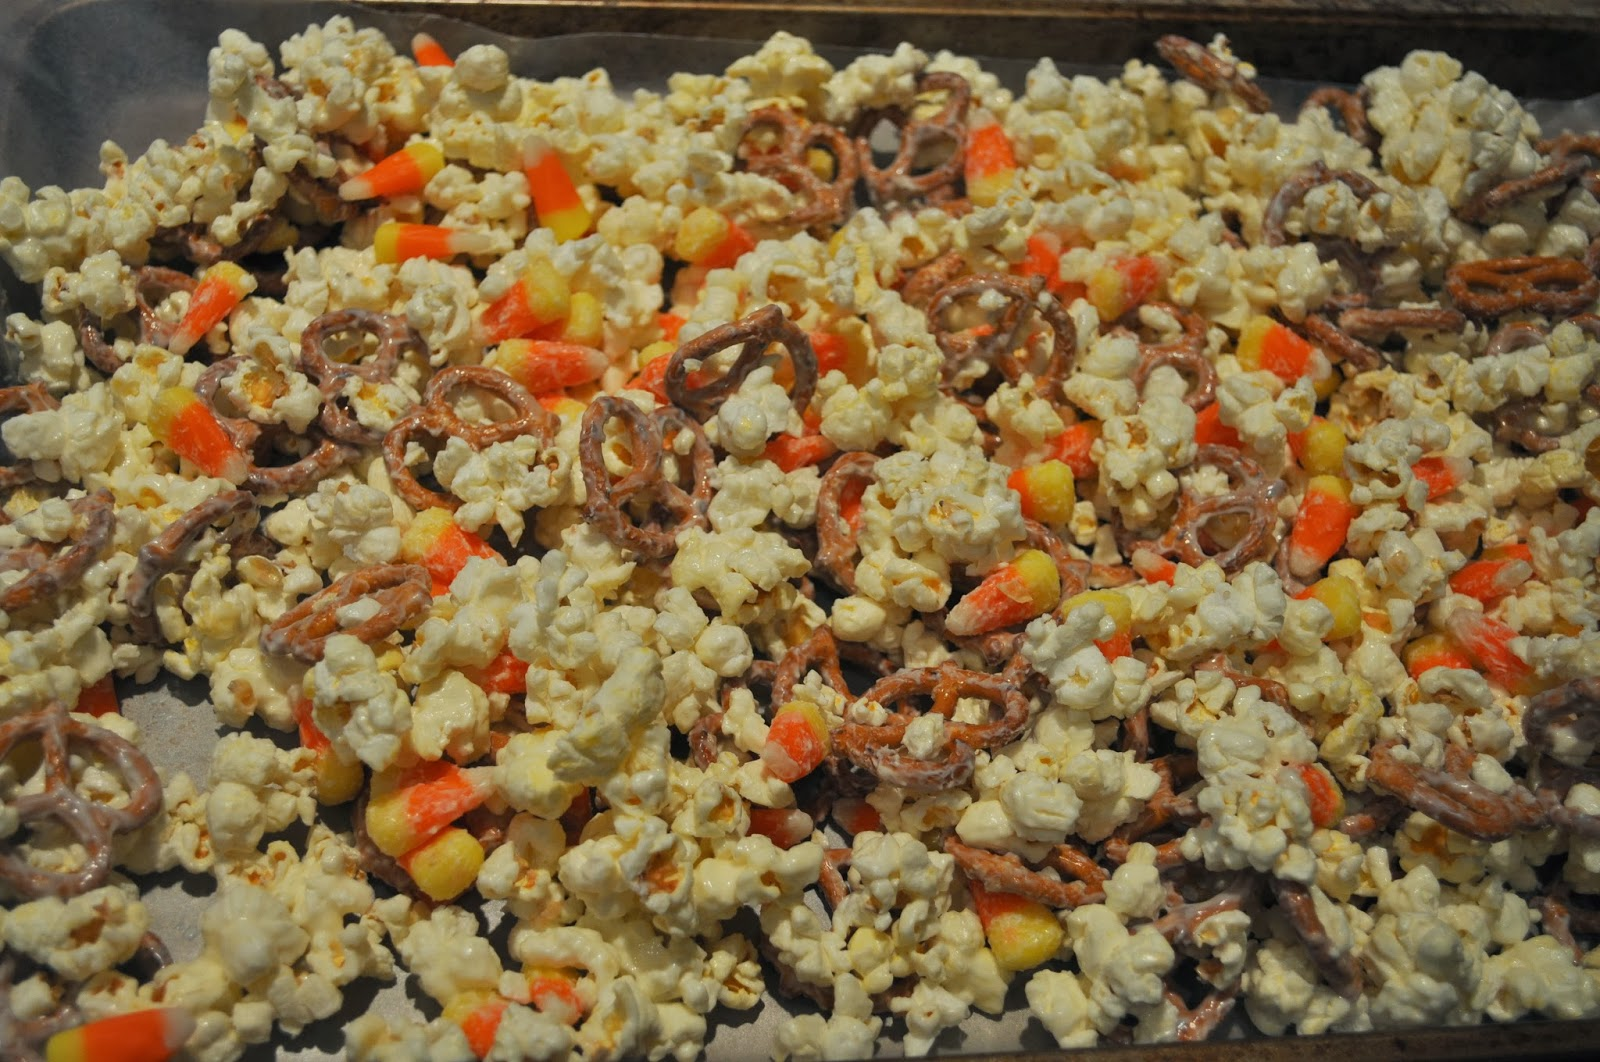 Aztec Popcorn Images & Pictures - Becuo